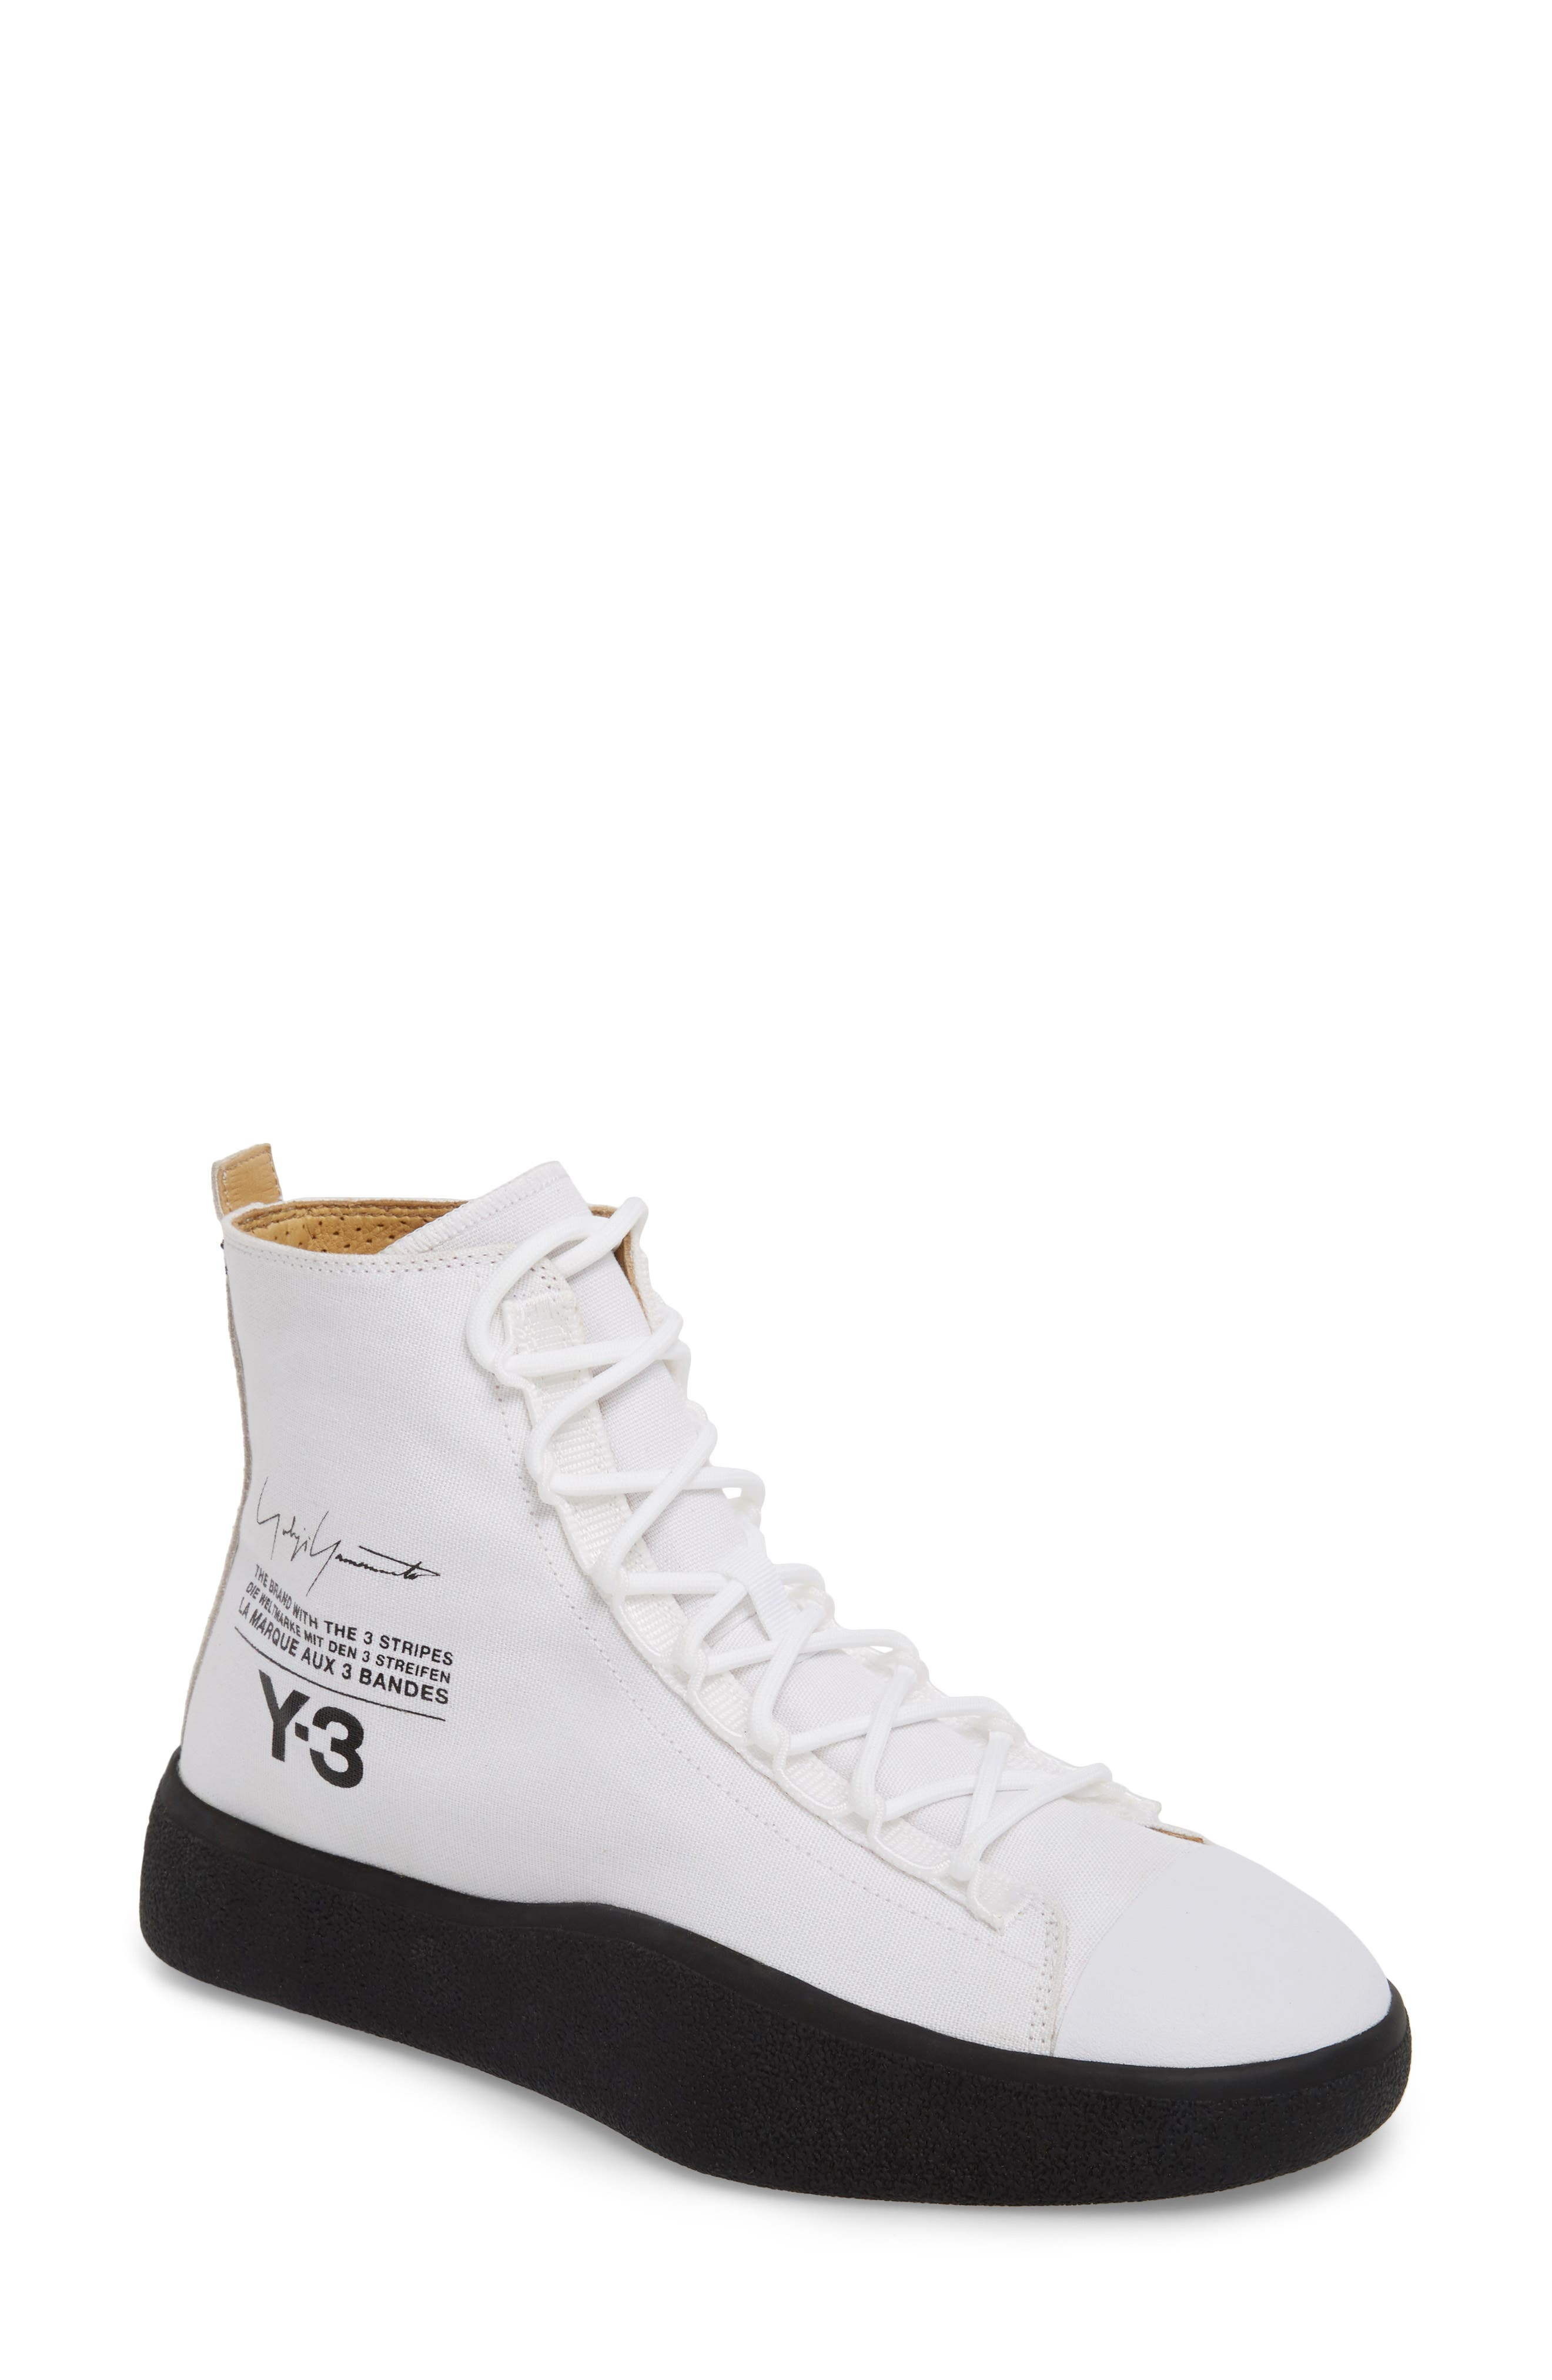 Y-3 Bashyo High Top Sneaker (Women)